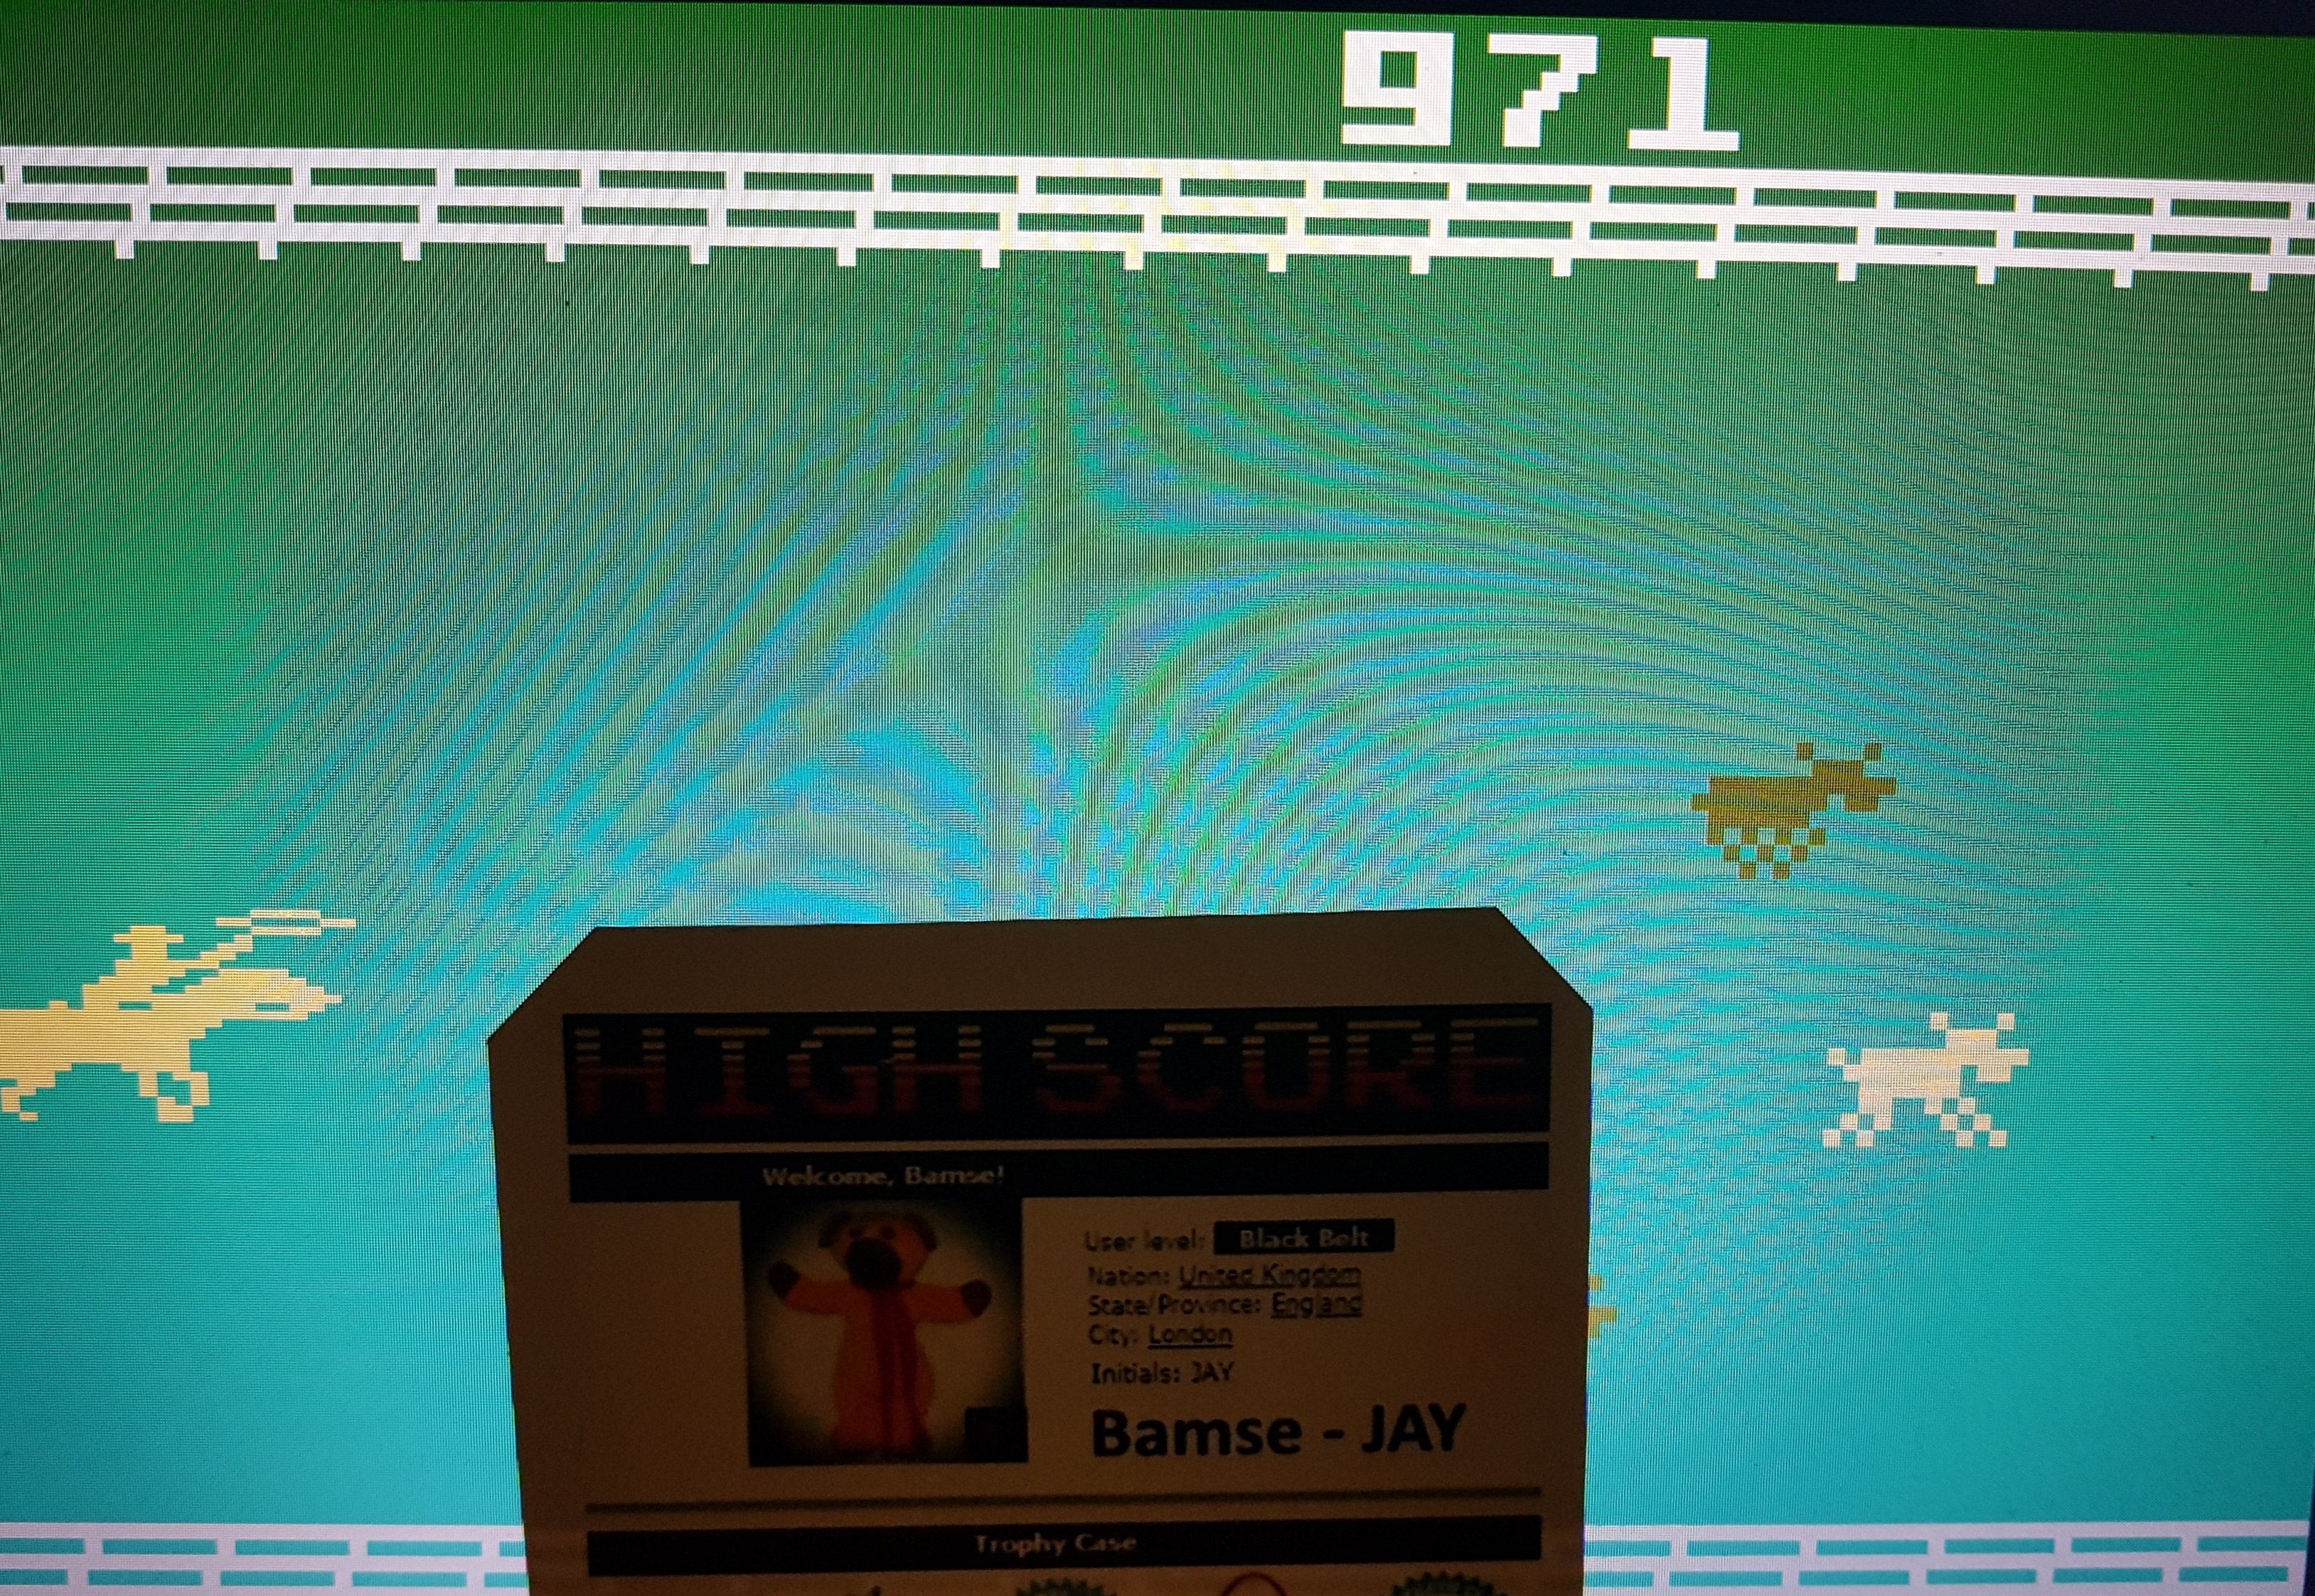 Bamse: Stampede: Select 4 (Intellivision Emulated) 971 points on 2019-09-12 04:11:42